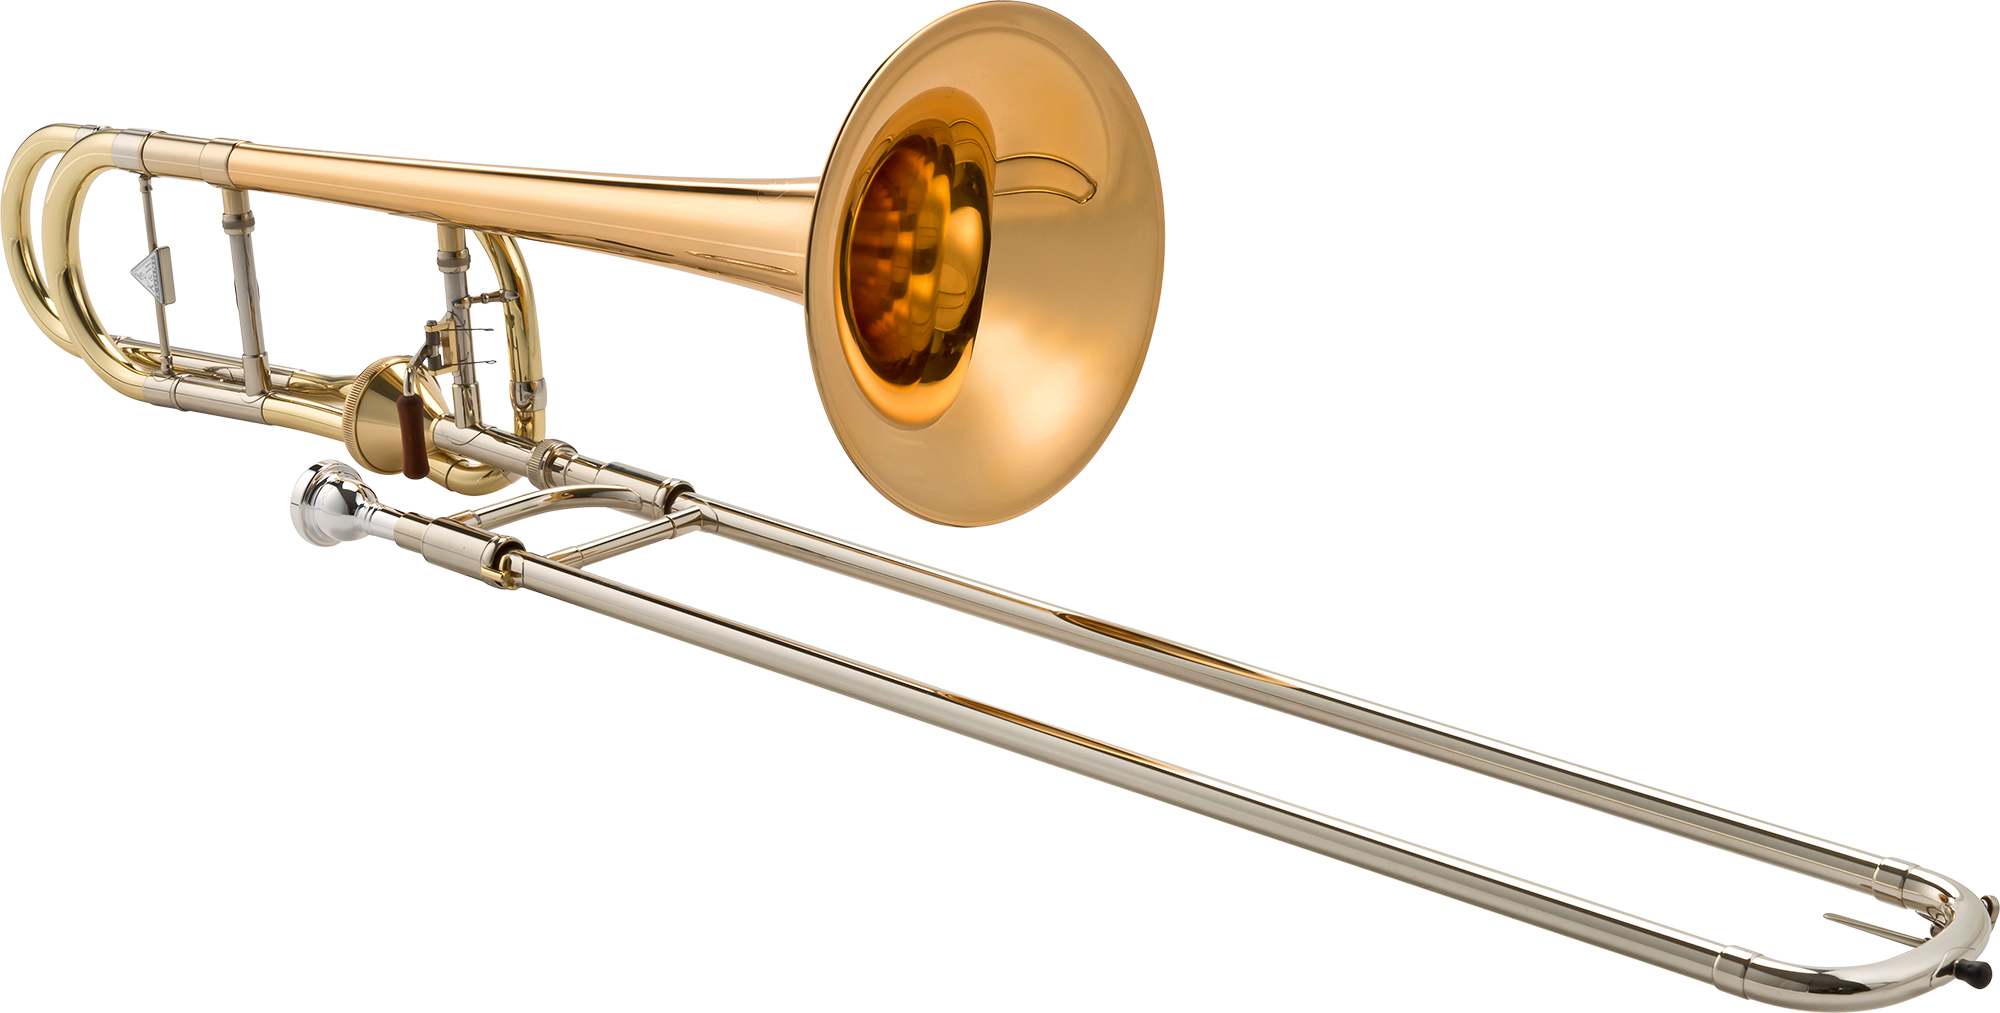 Hd Trombone Png - Download Trombone PNG Clipart - Free Transparent PNG Images, Icons ...